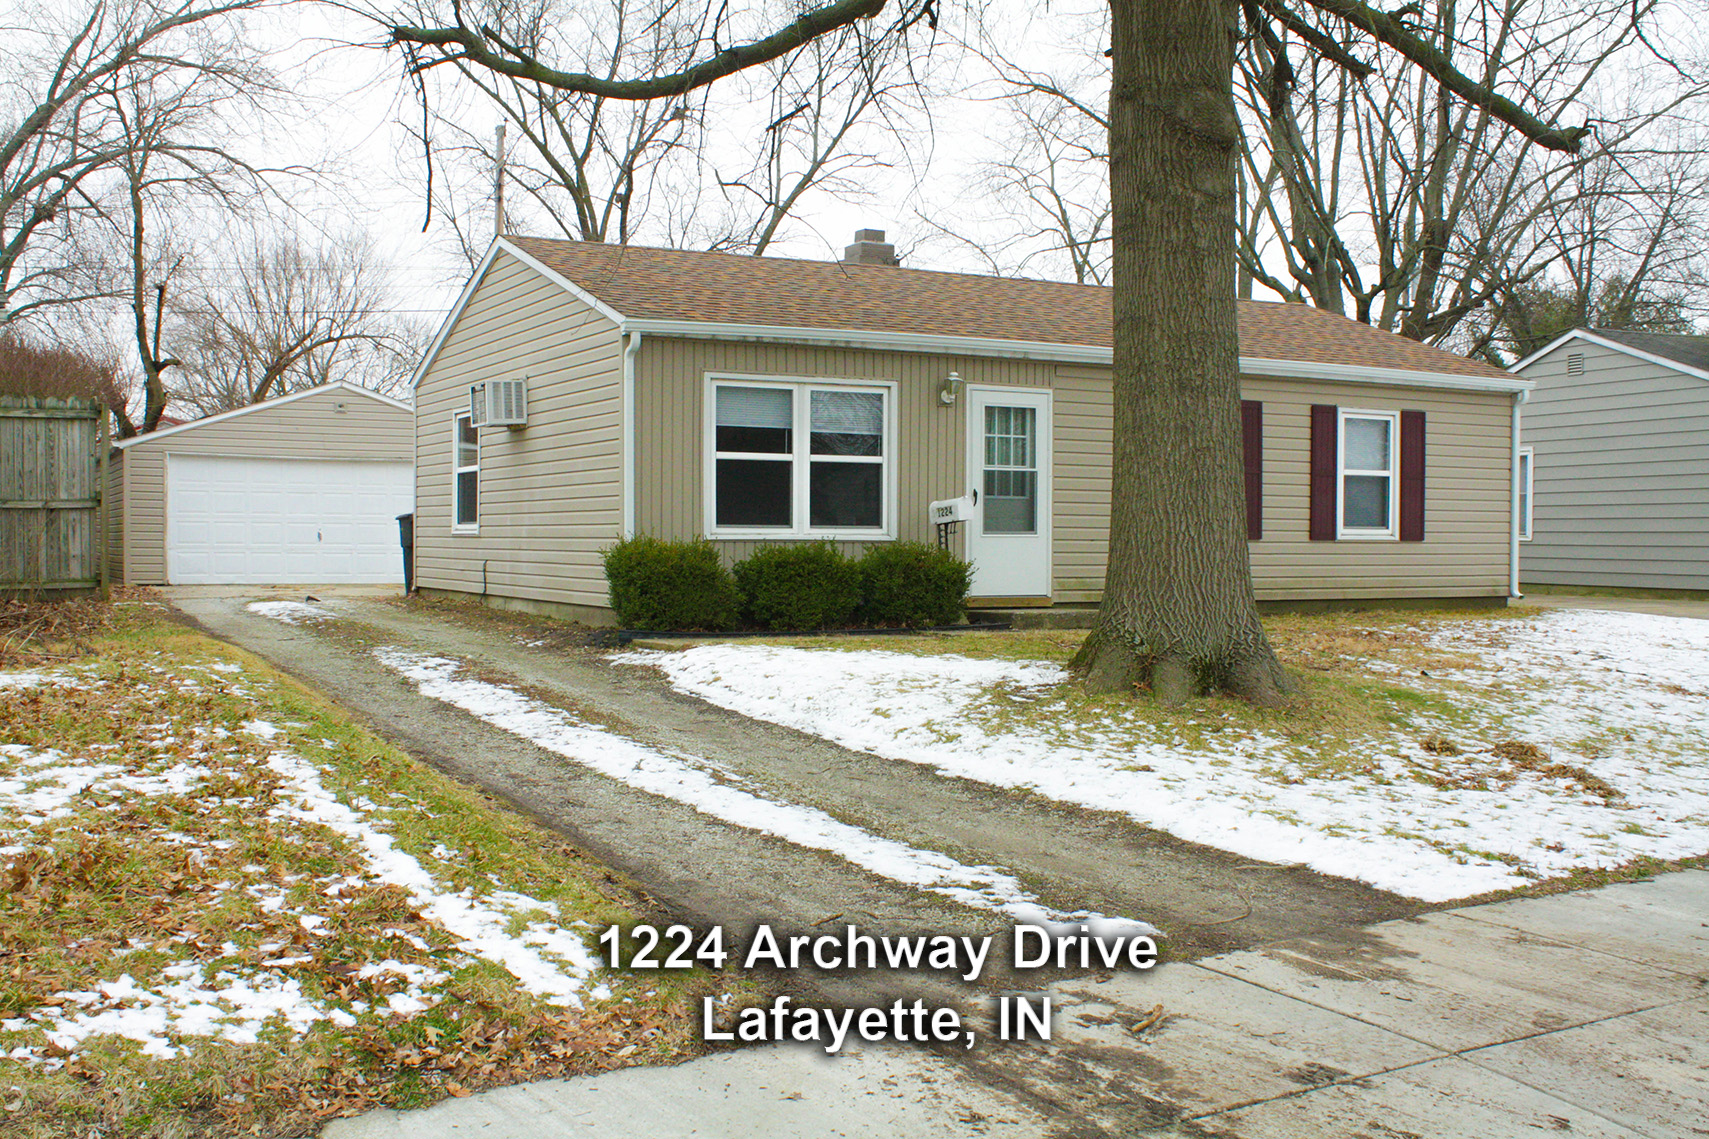 1224 Archway Drive – Lafayette, IN